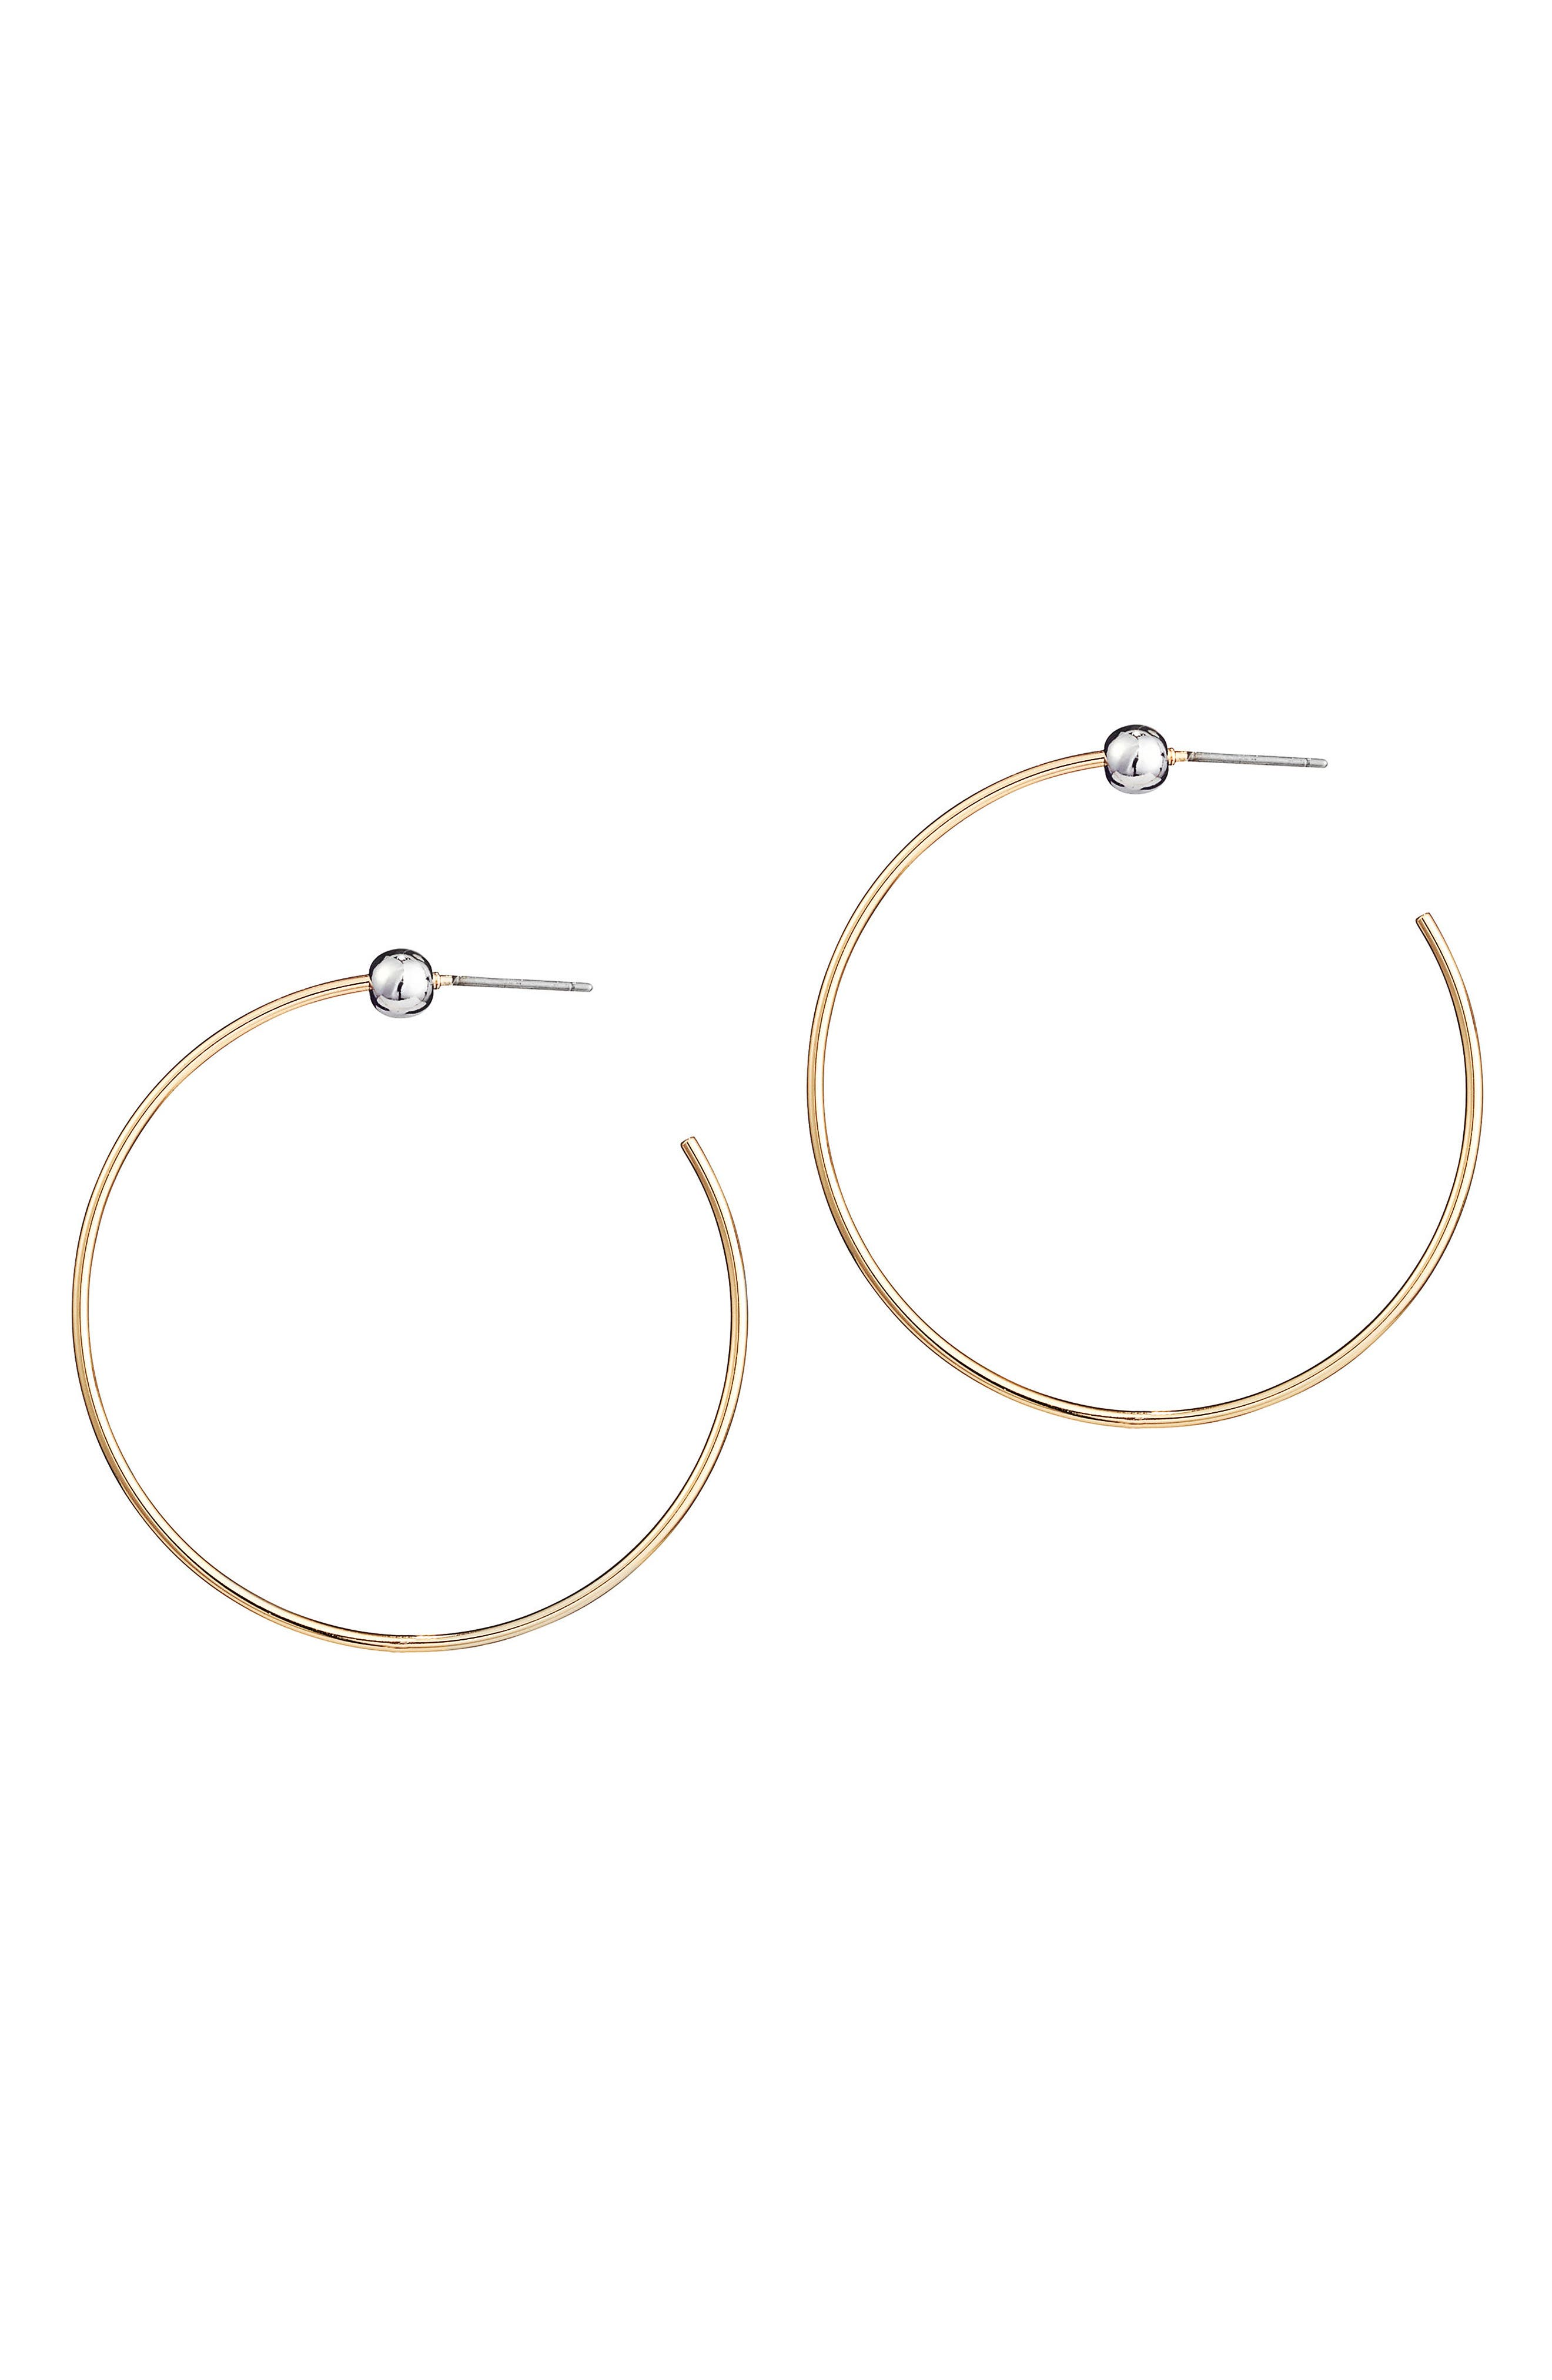 Icon Small Hoop Earrings,                         Main,                         color, Gold/ Silver